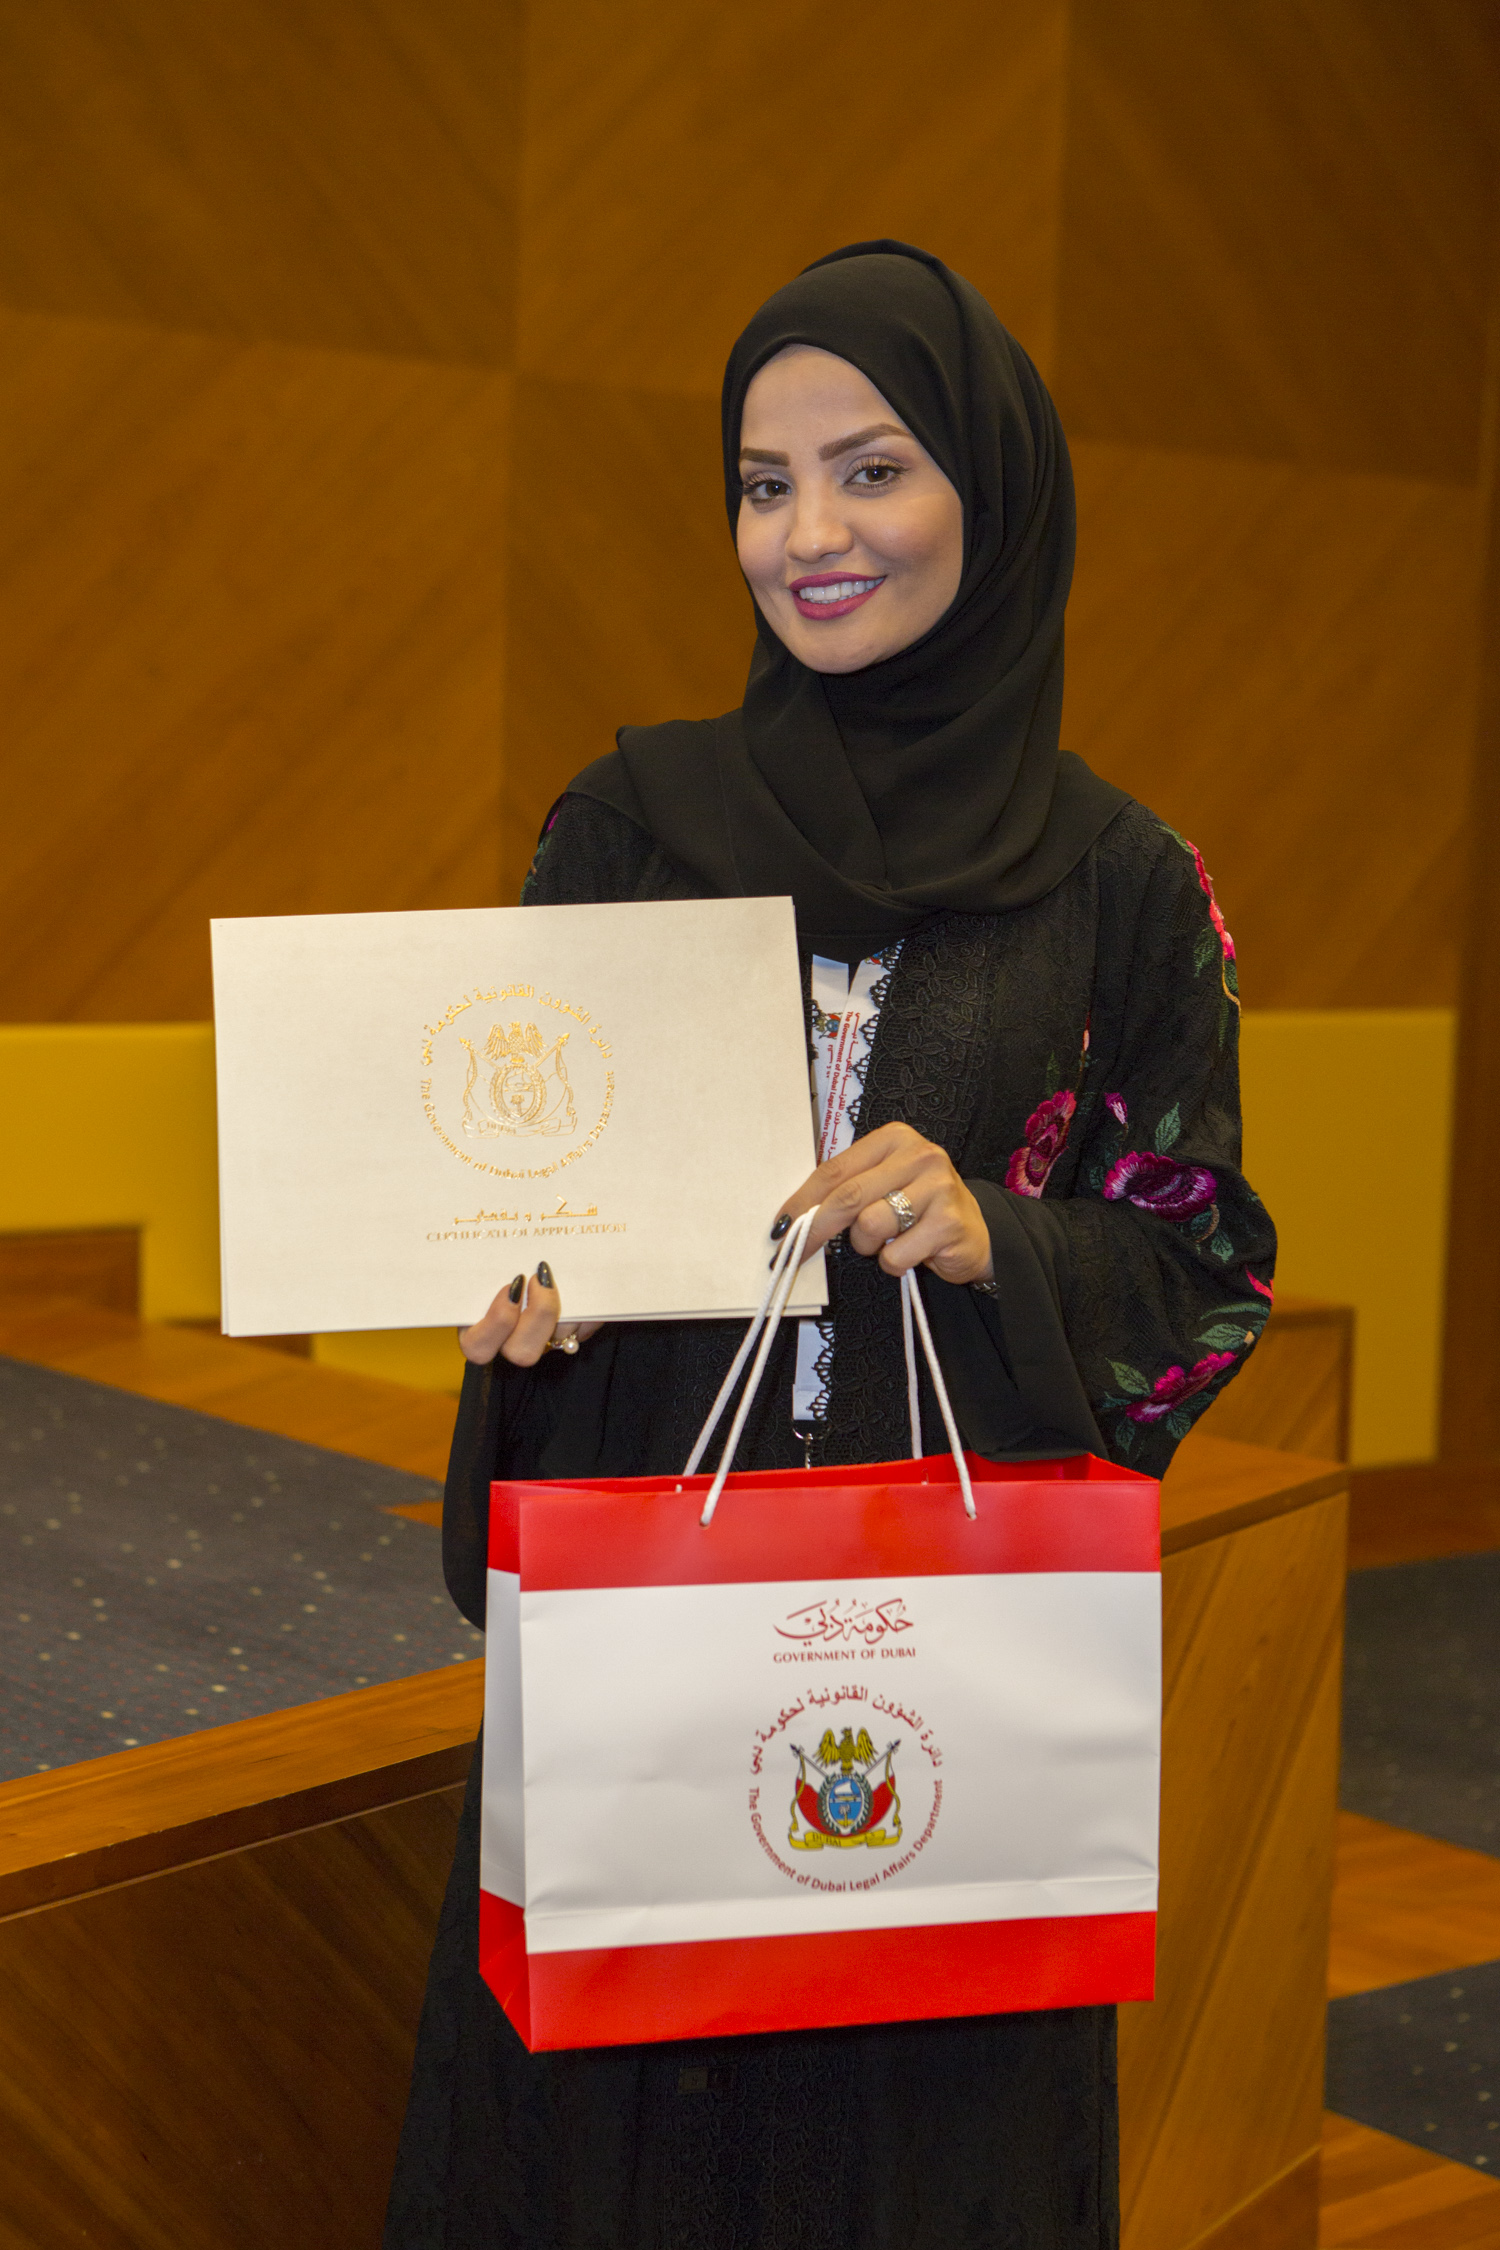 Hessa Ahmed Abdulla Honoured as the Winner of the Competition to select the name and logo for the Al Qestas Excellence Award. 31/08/2016